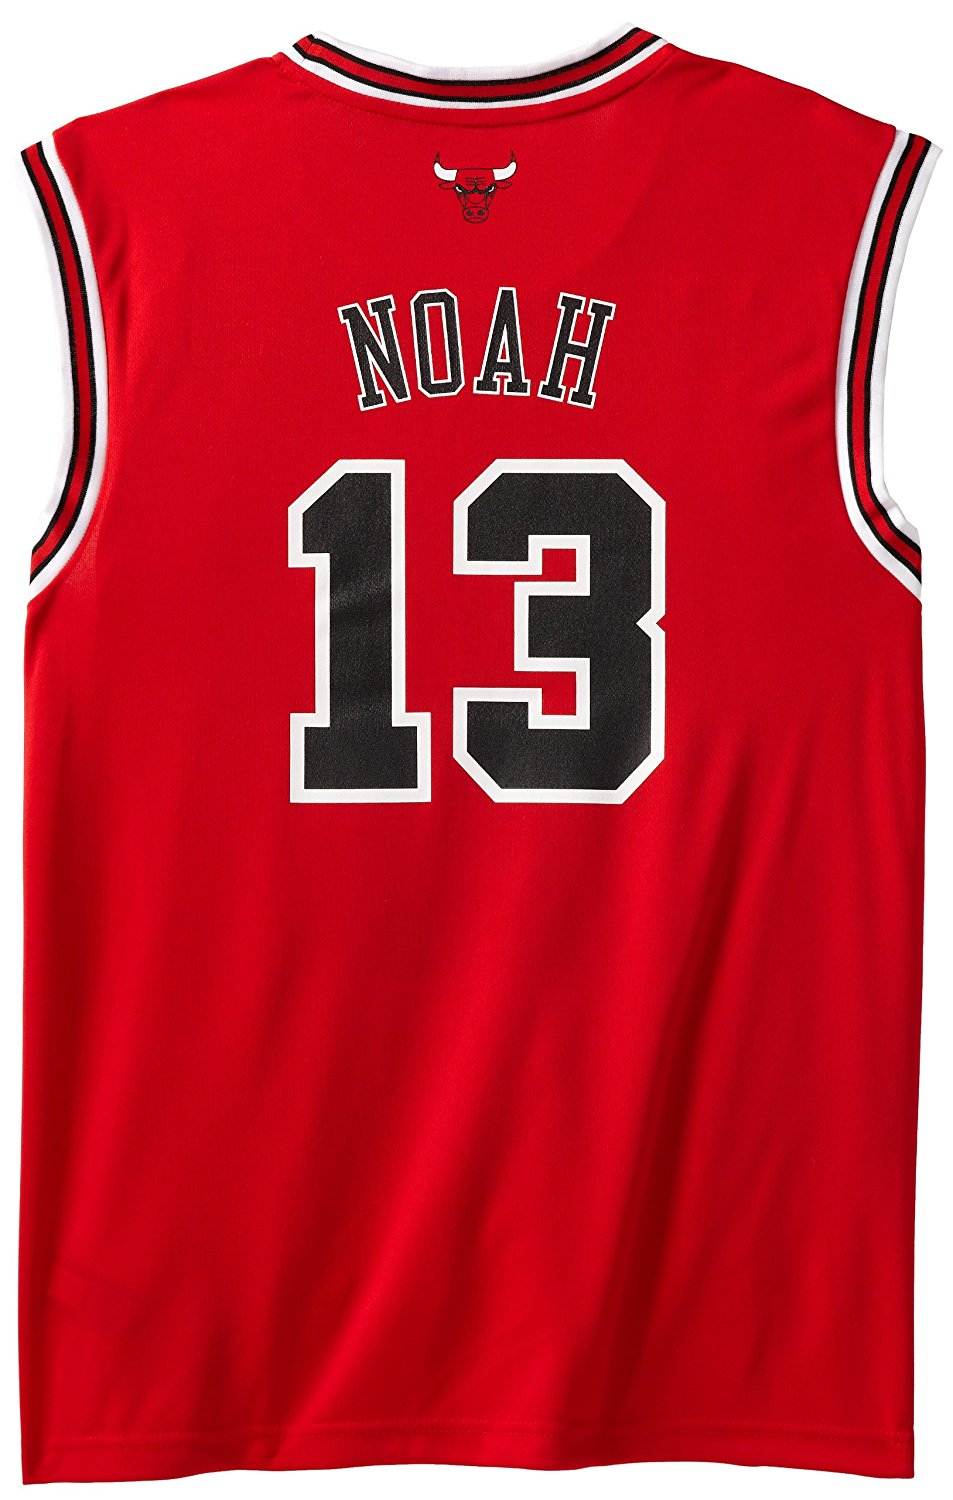 79f9759fa Carlos Boozer Chicago Bulls Autographed Red  5 Jersey Size 50. Get  Quotations · NBA Chicago Bulls Red Replica Jersey Joakim Noah  13